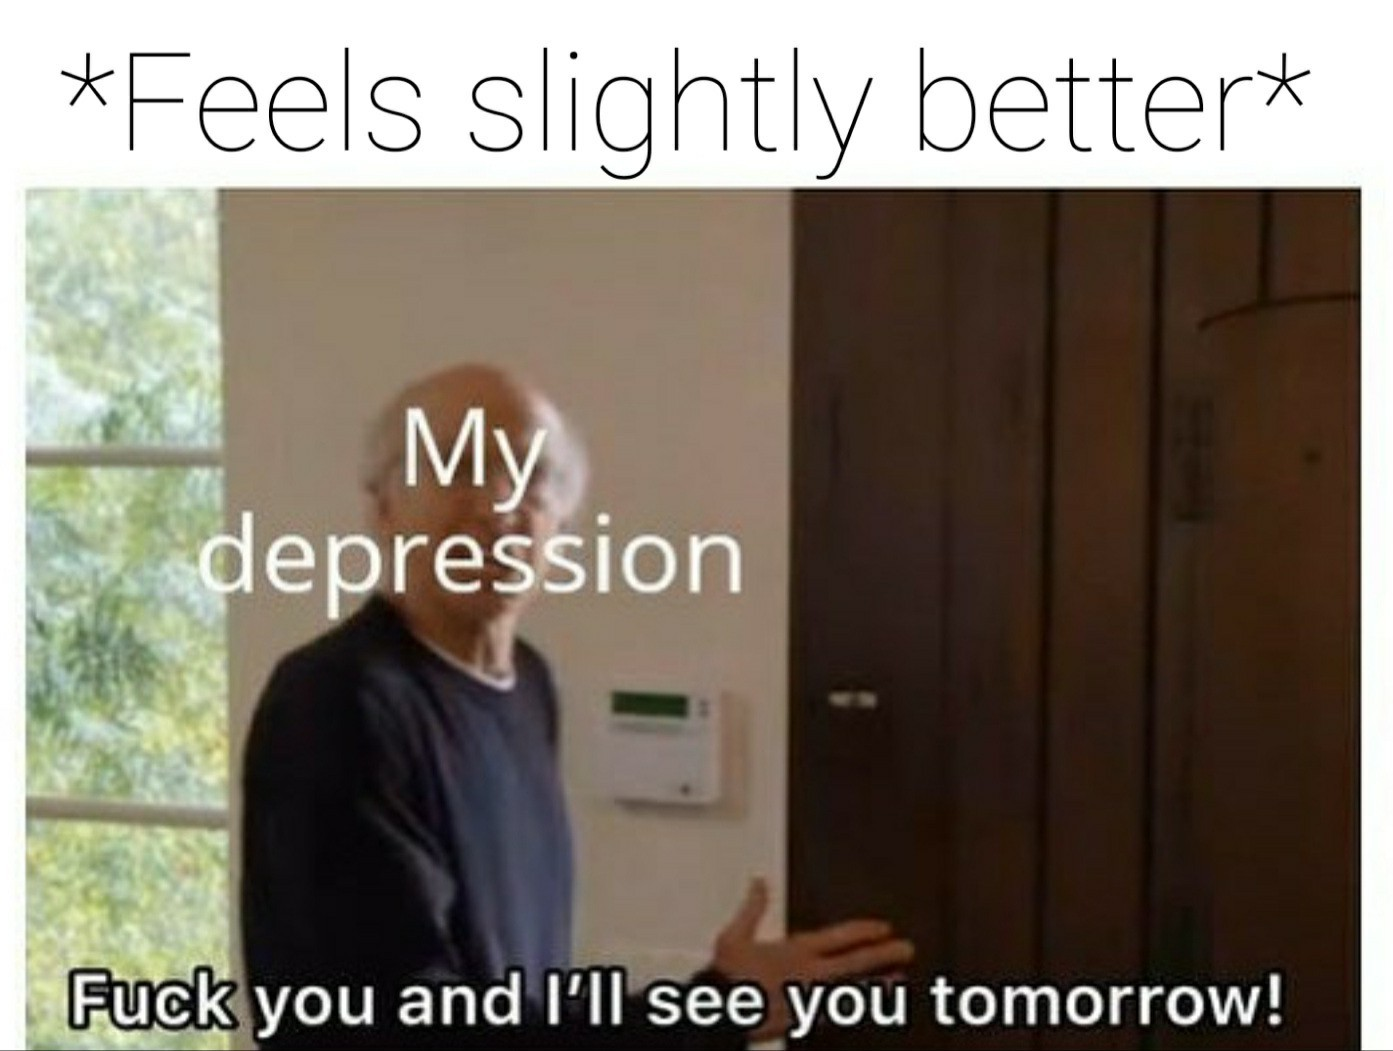 I'm trying to love my depression so it leaves me too - meme